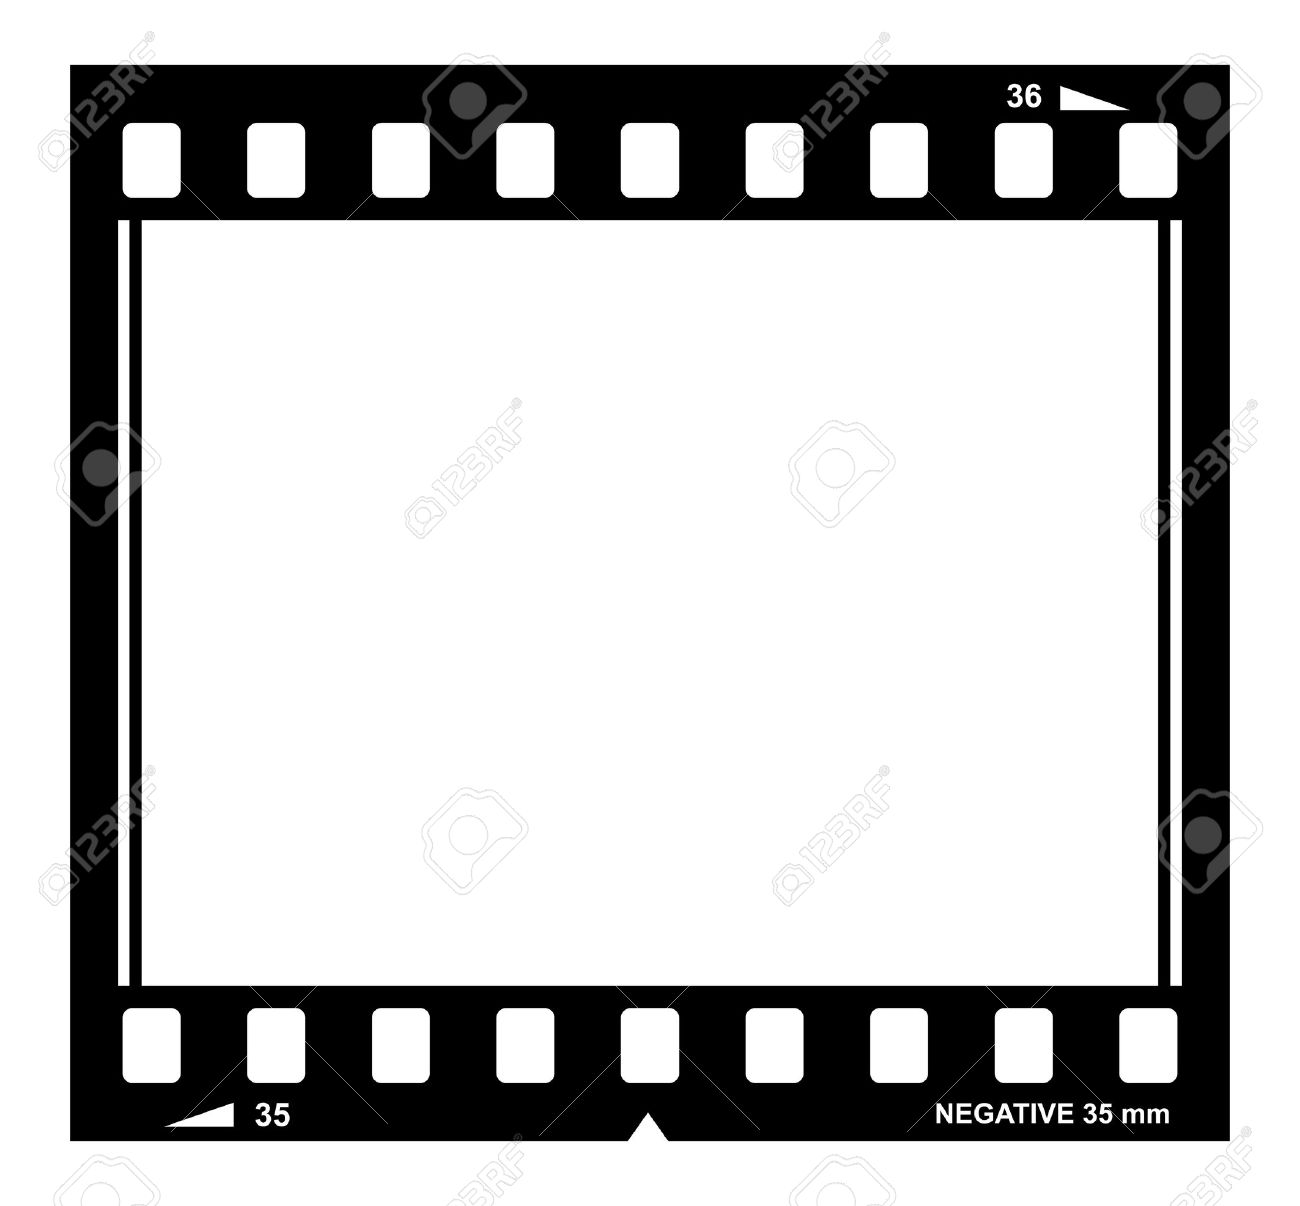 film strip illustration royalty free cliparts vectors and stock rh 123rf com film strip vector png film strip vector png